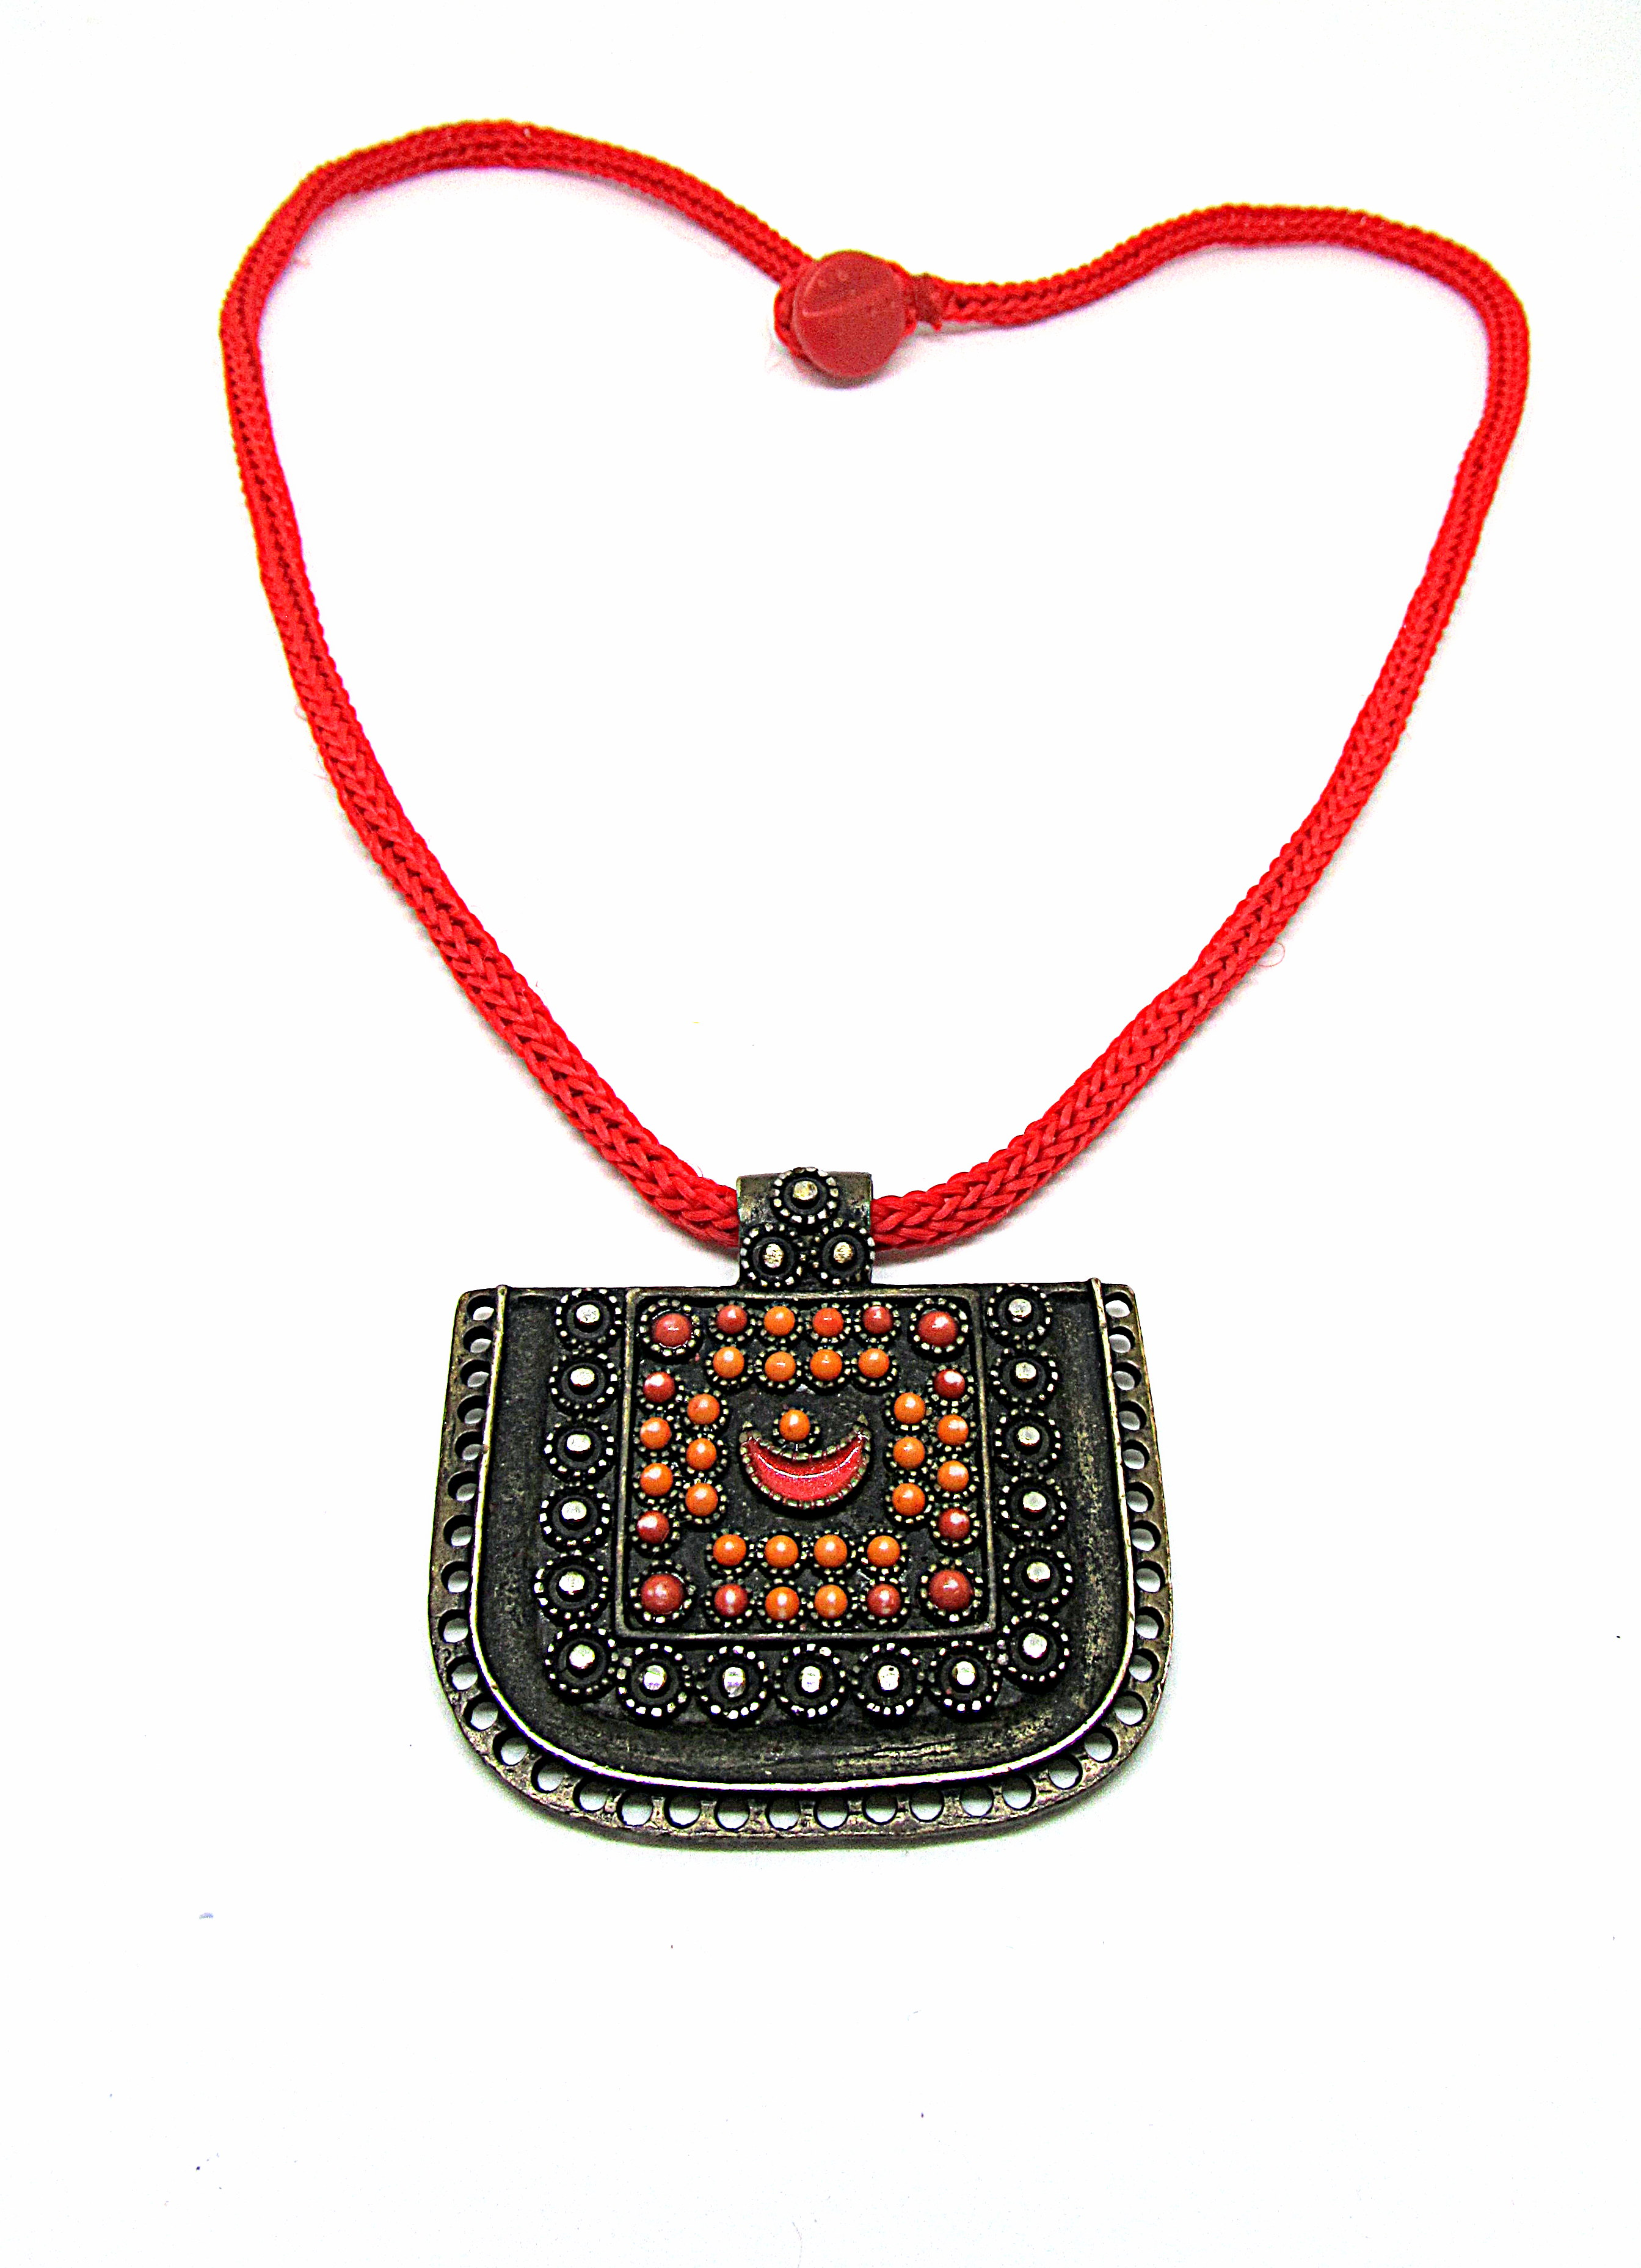 Pendant on a red lace